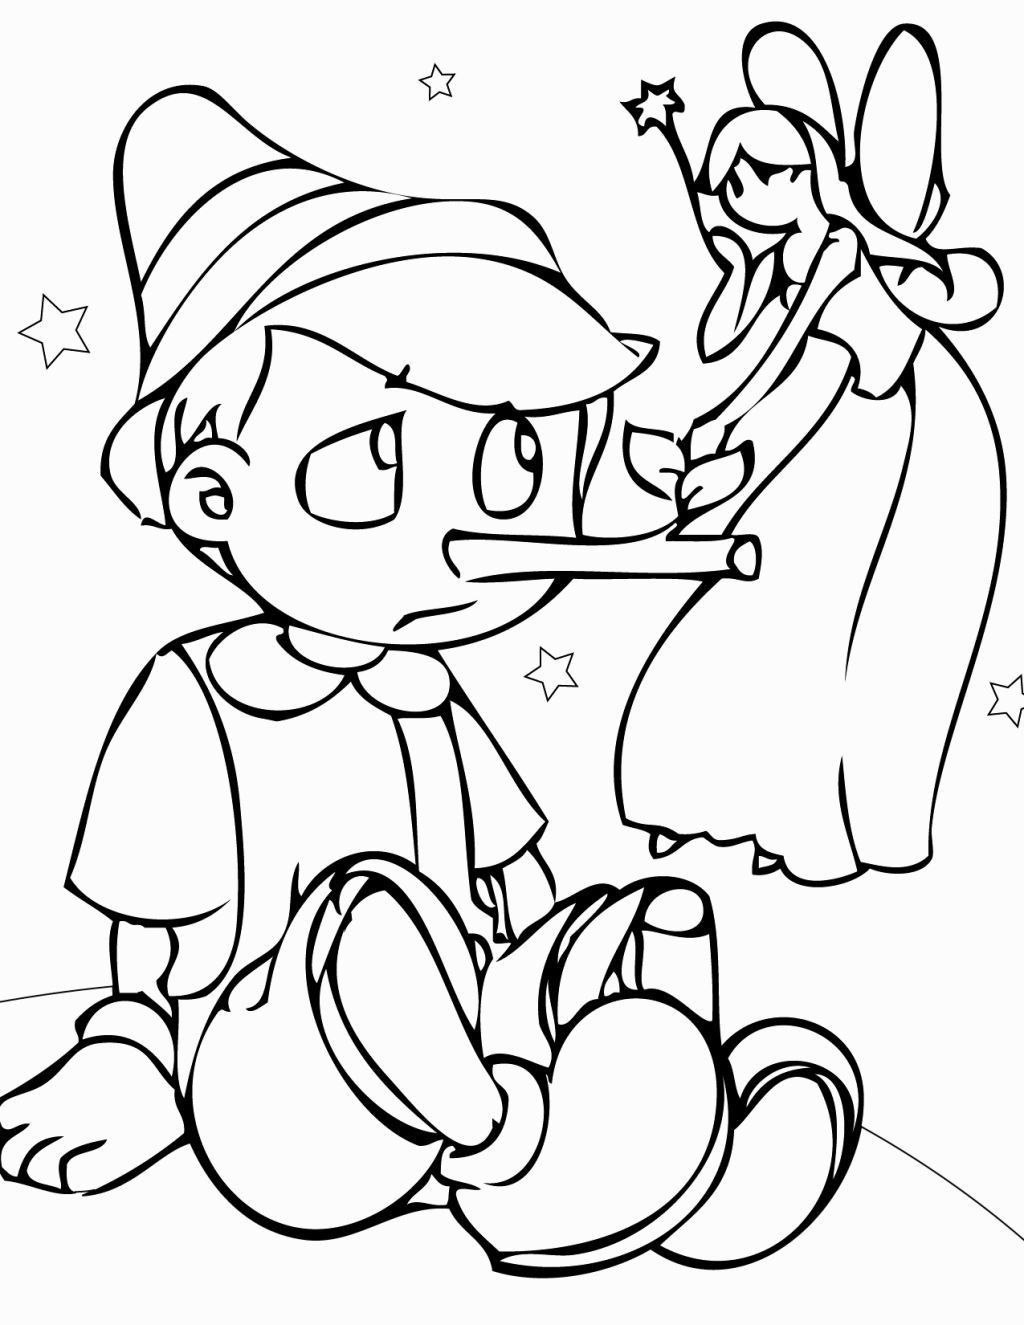 fairy tale coloring fairytale coloring pages pinocchio coloring pages for kids disney. Black Bedroom Furniture Sets. Home Design Ideas